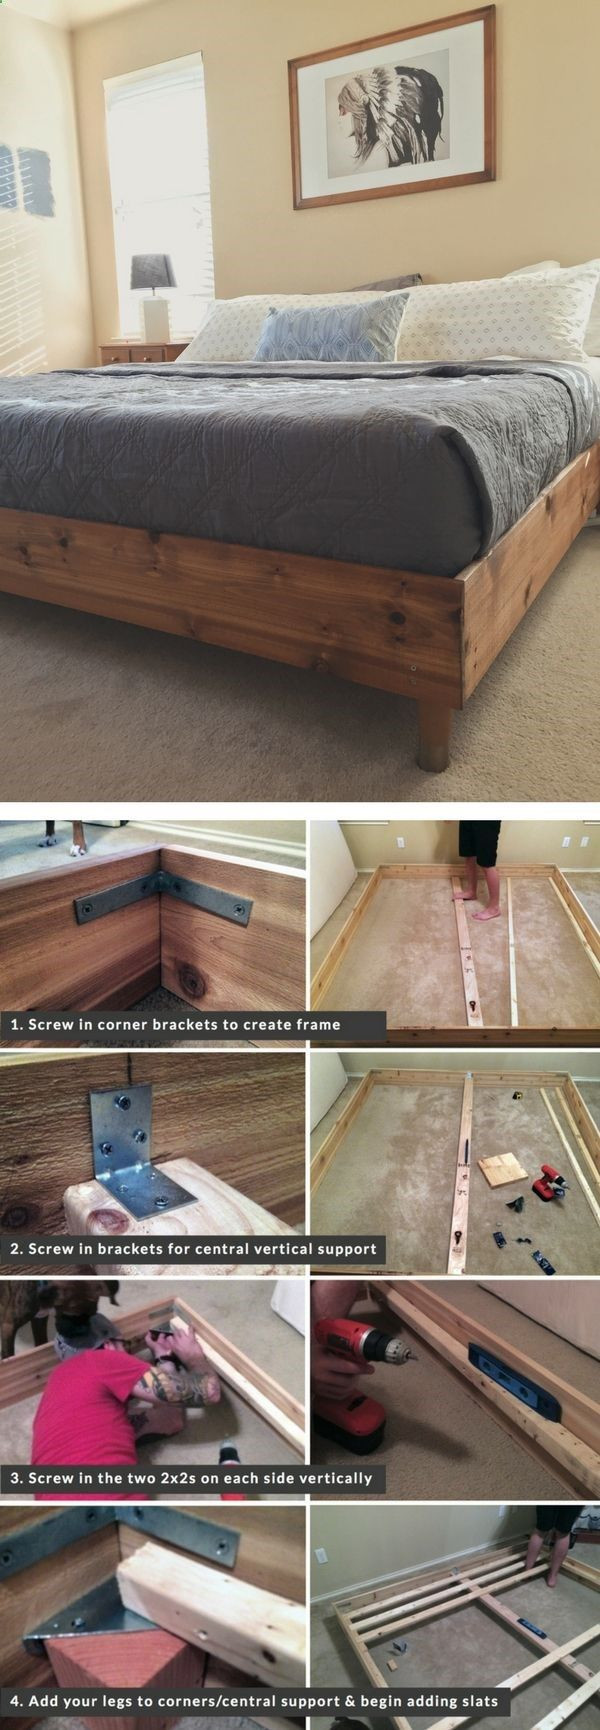 26 attractive Hardwood Floor Refinishing Lehigh Valley Pa 2021 free download hardwood floor refinishing lehigh valley pa of 42 best bedding images on pinterest bed base bedroom and bedroom in plans of woodworking diy projects check out the tutorial on how to build a